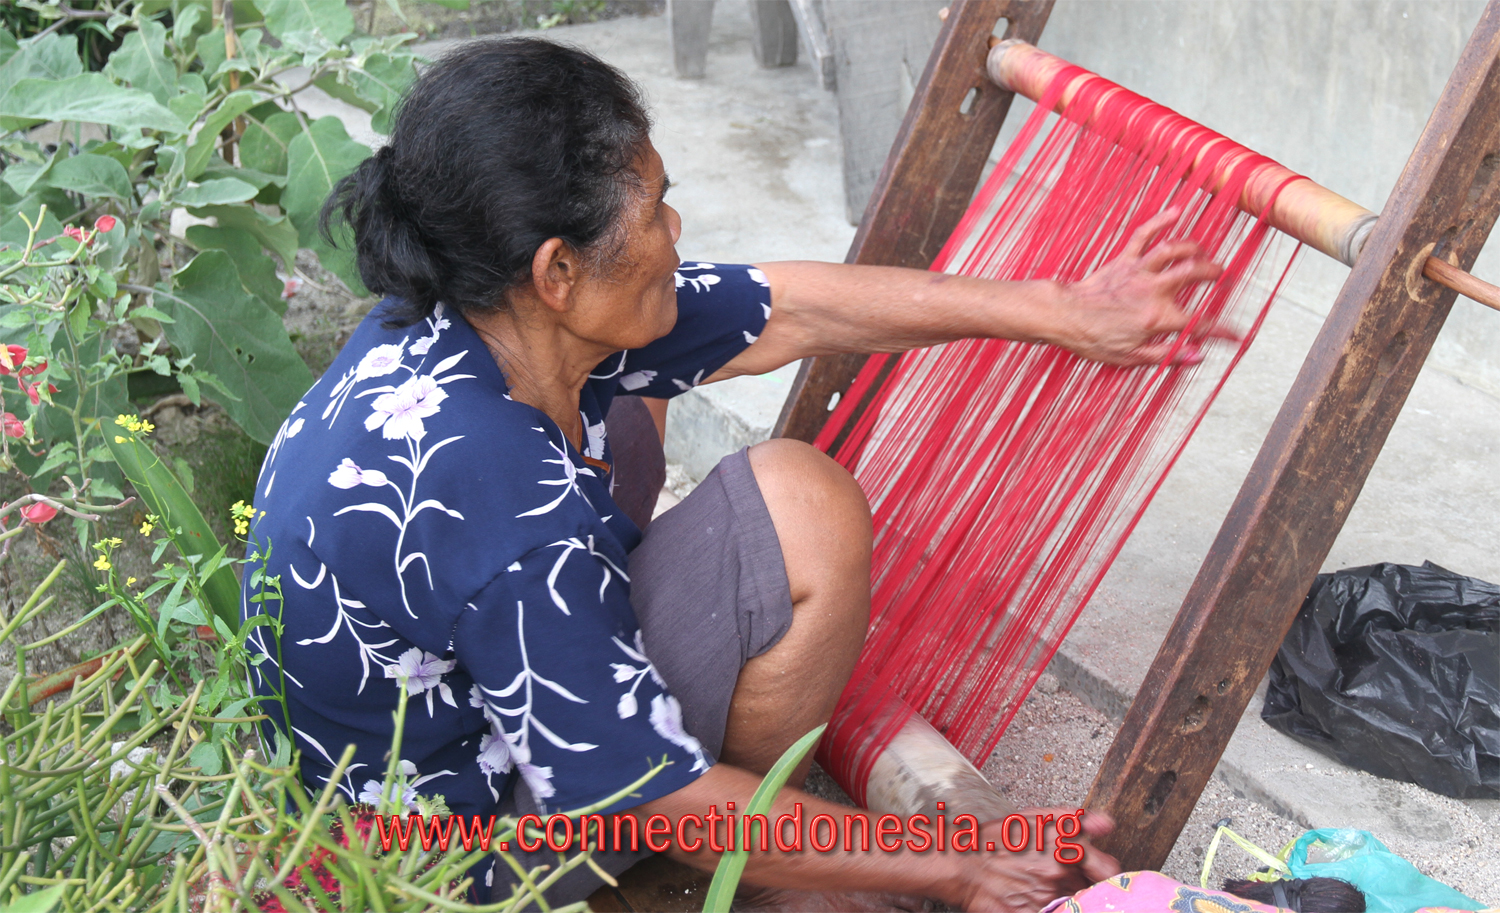 Our Ulos weaving stories from Lake Toba – the region is still actively weaving using back-strap loom.